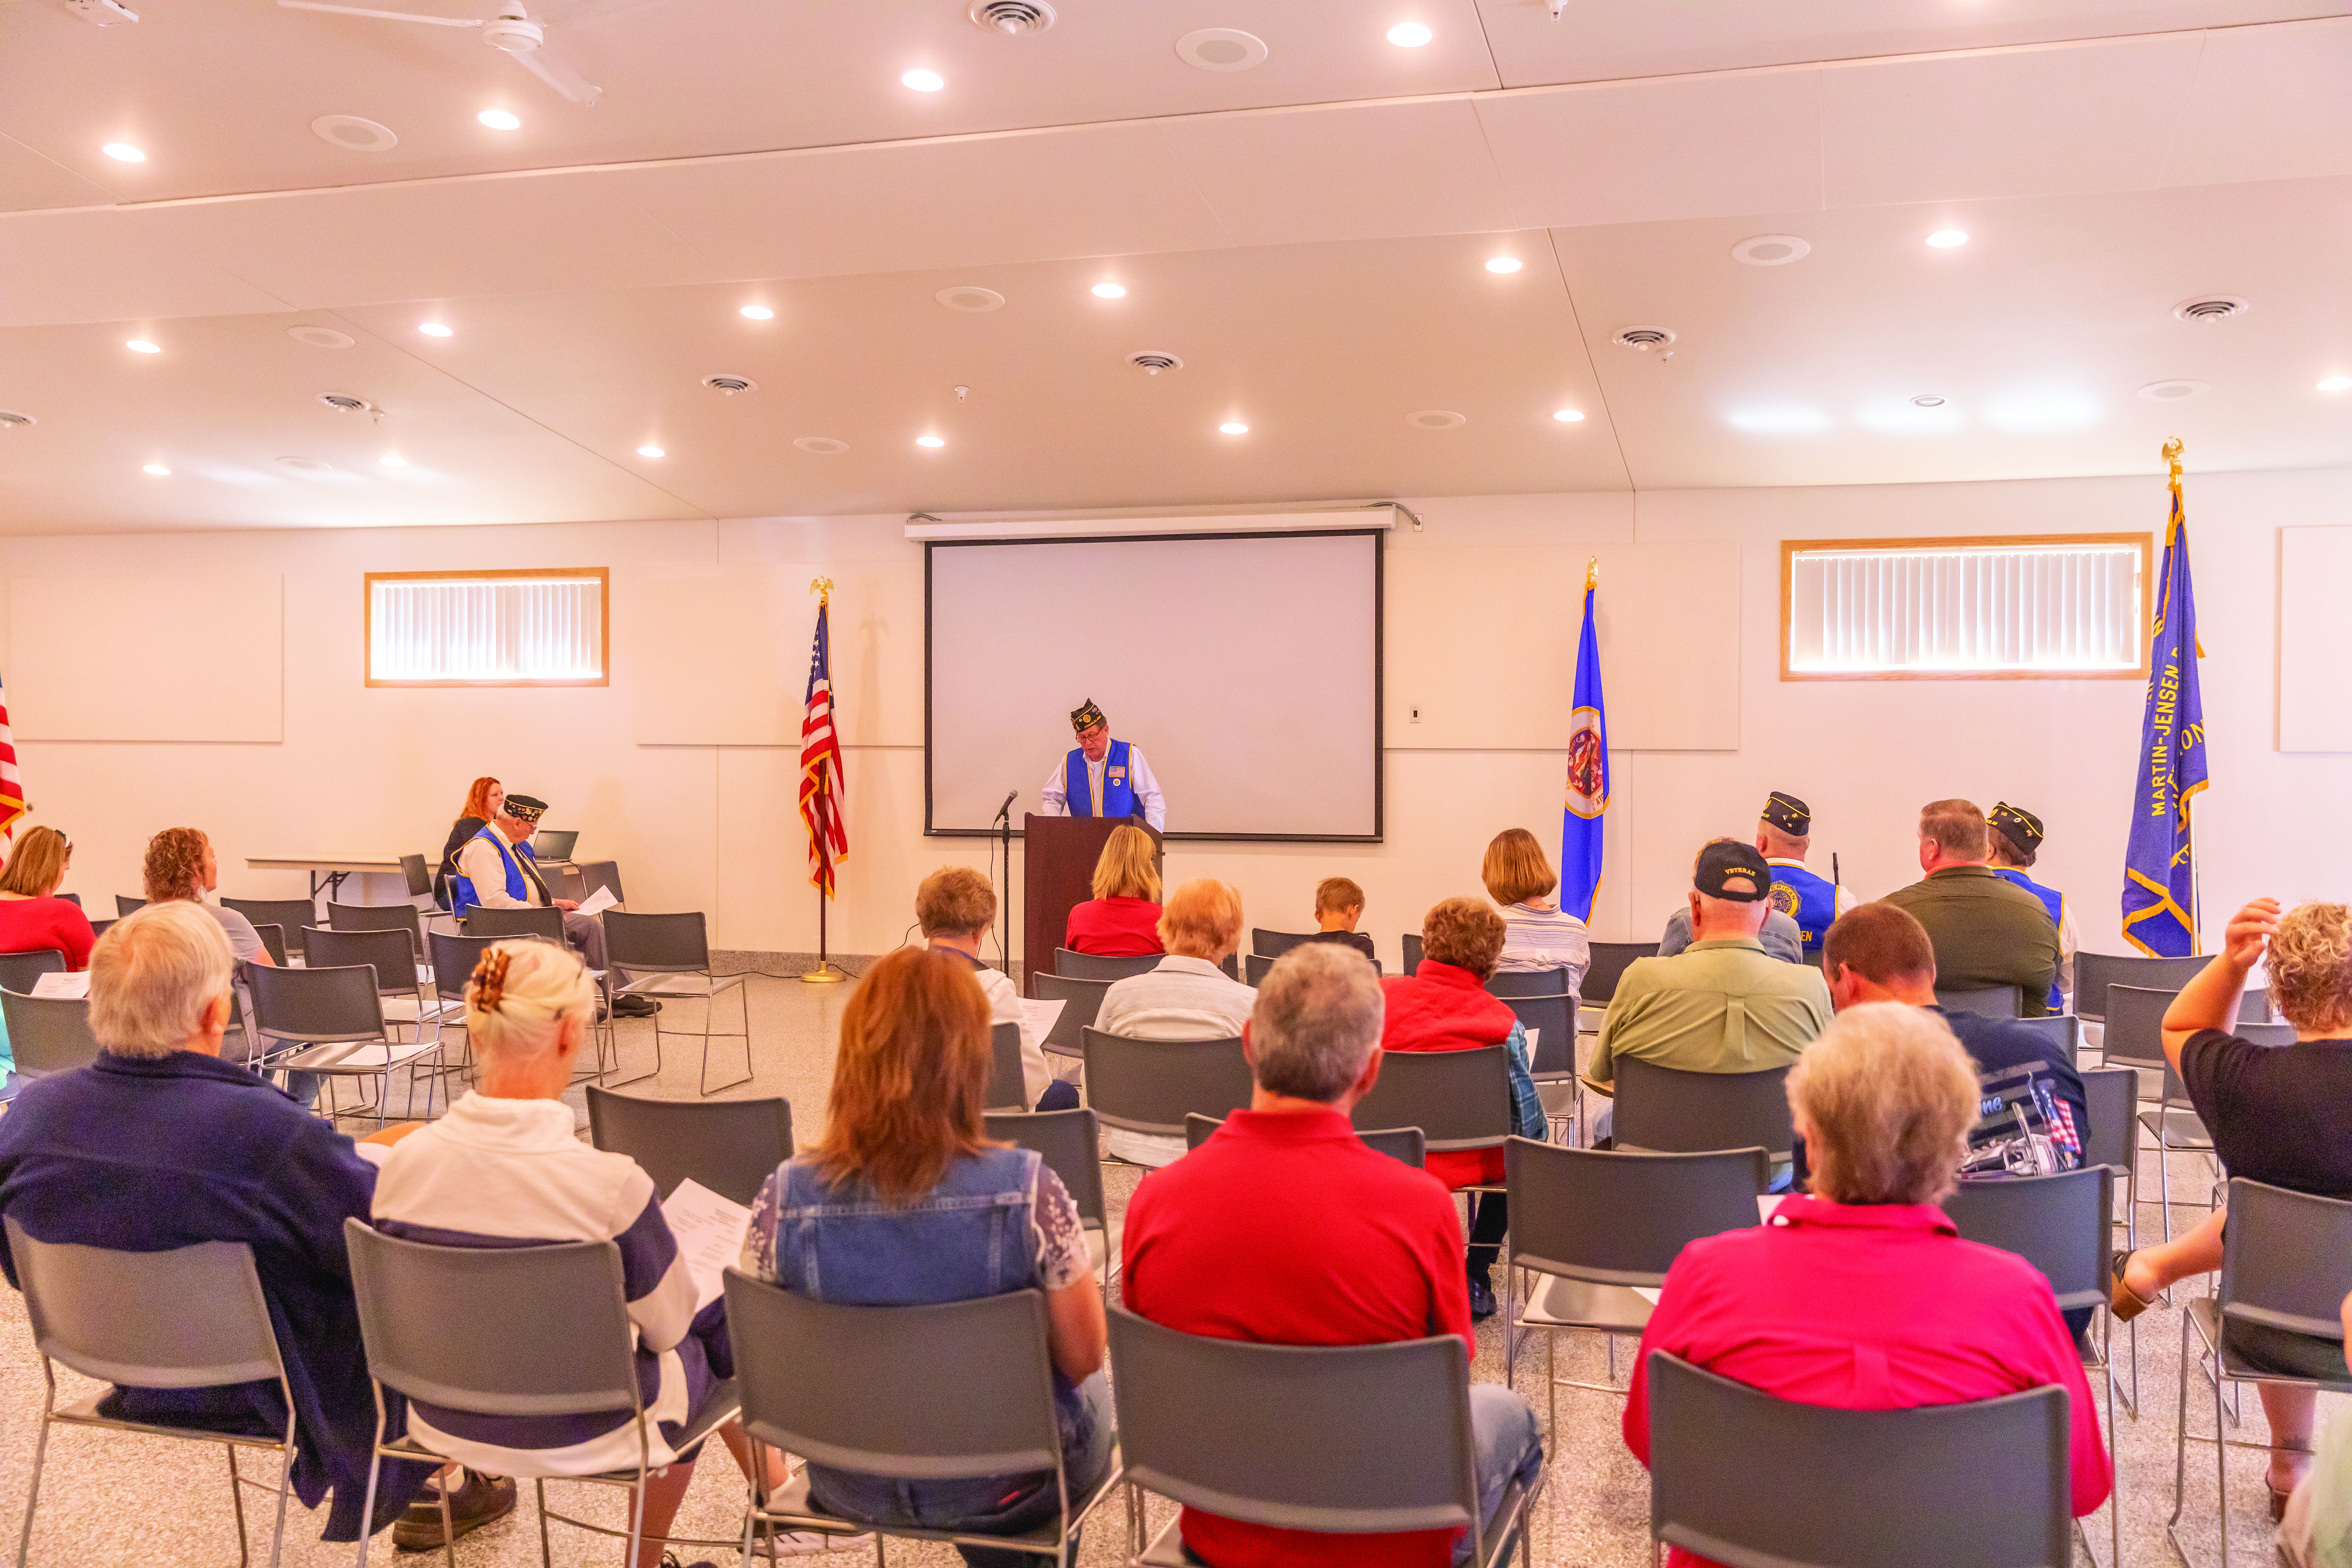 In Franklin, a program was held at the Community Center.